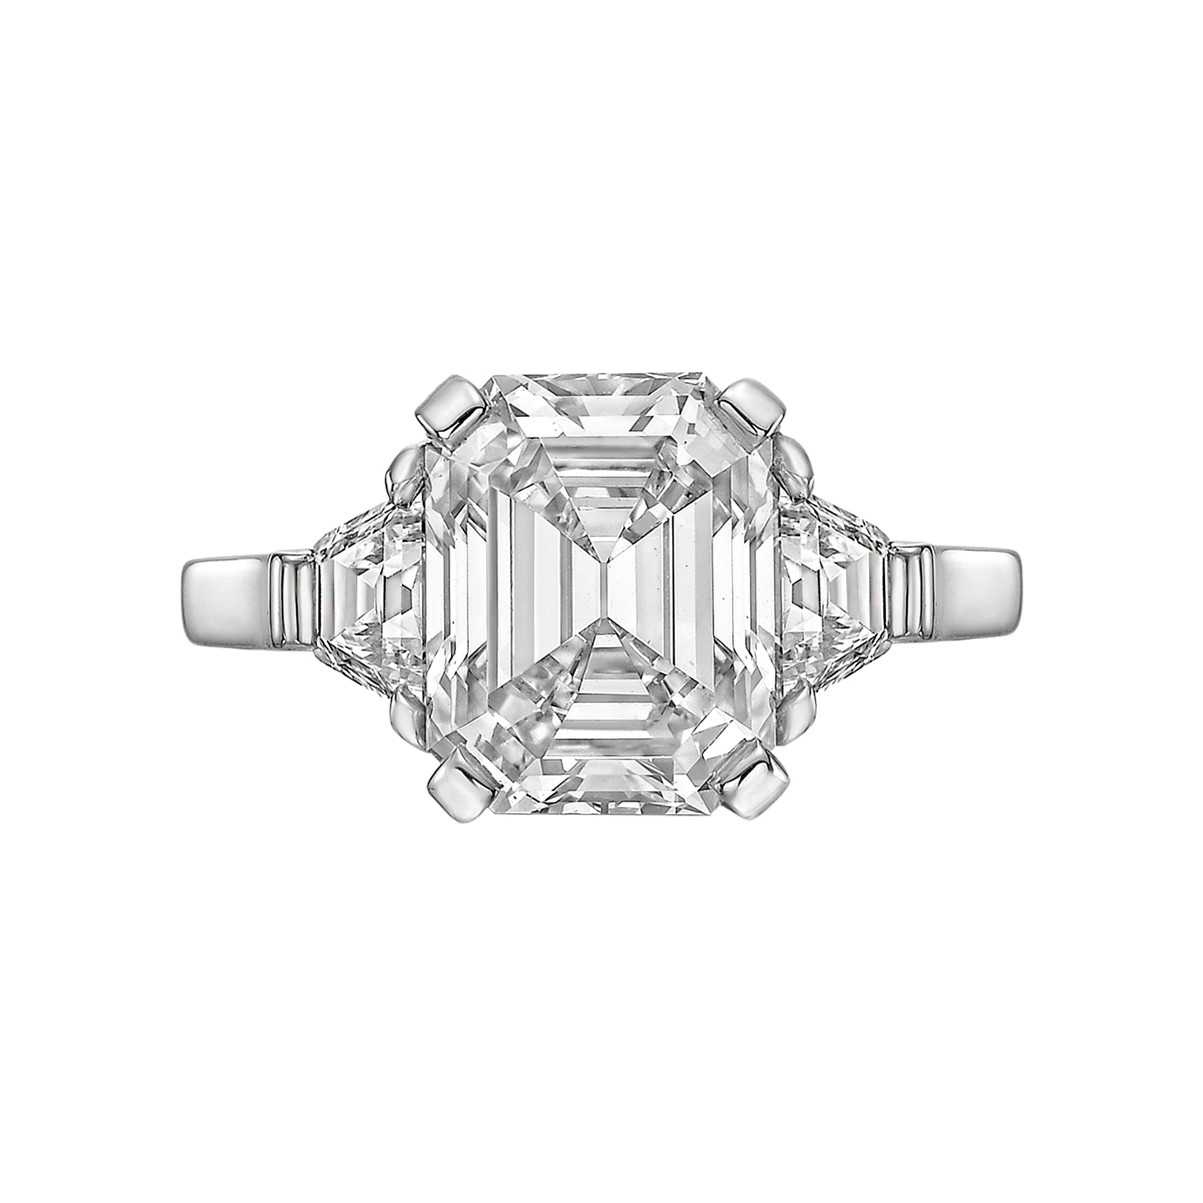 3.24ct Colorless Emerald-Cut Diamond Ring